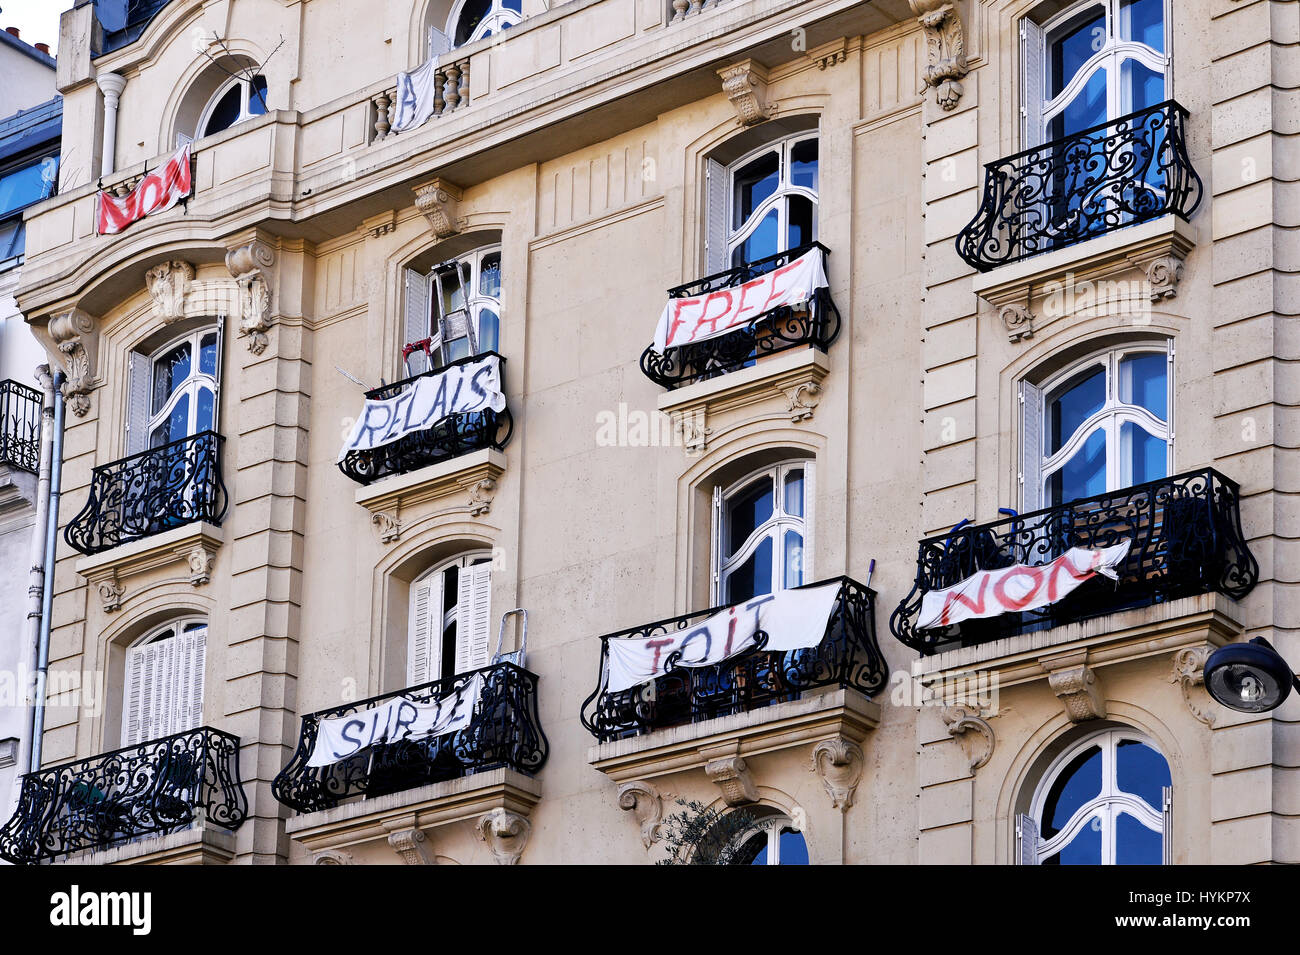 Protest streamers of tenants against a cell-phone antenna on the roof of a parisian building, Paris, France - Stock Image